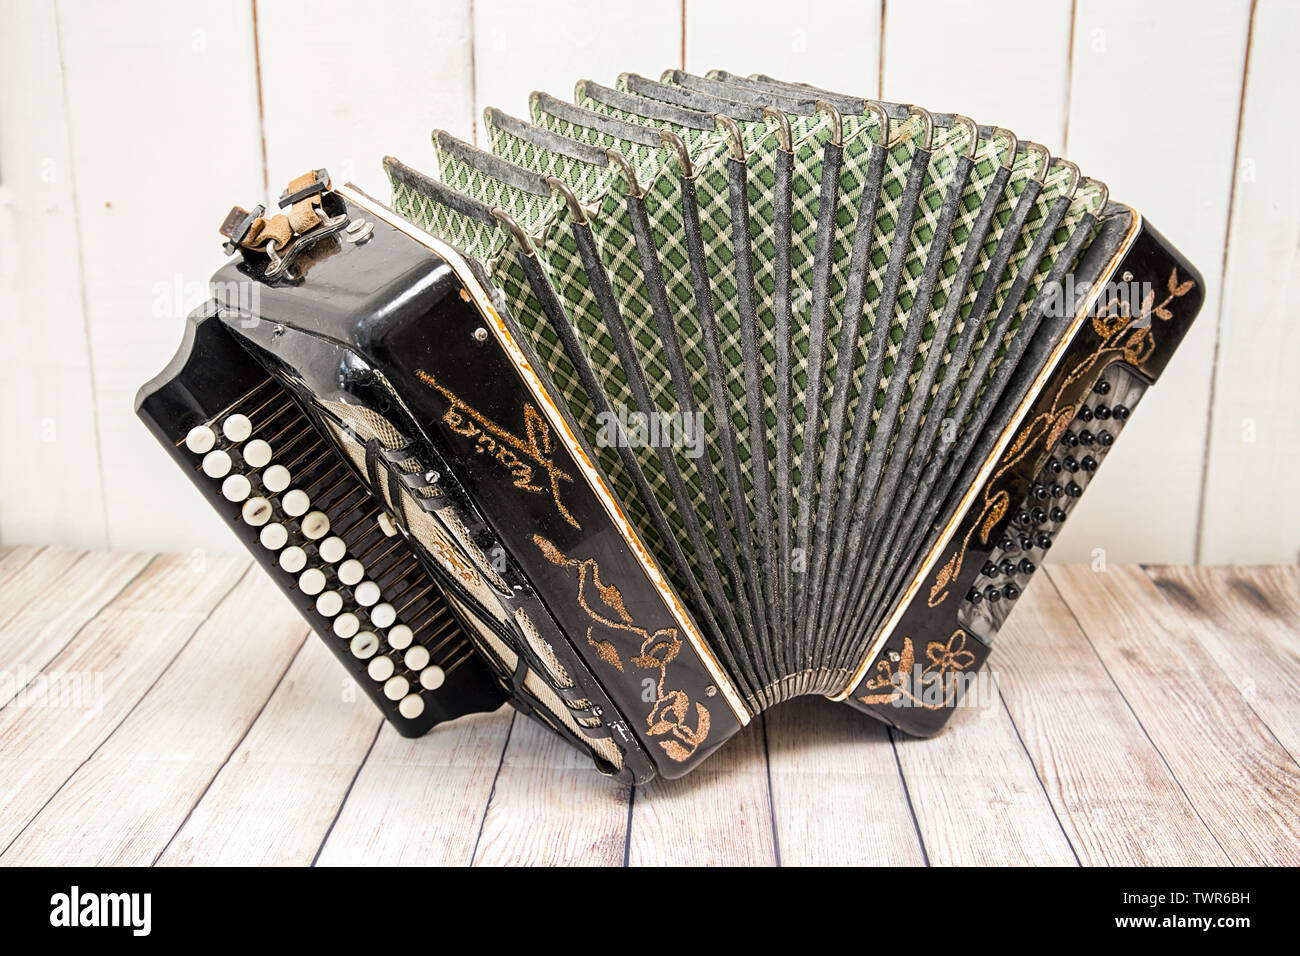 Accordion with furs spread out. Russian folk musical instrument - Stock Image